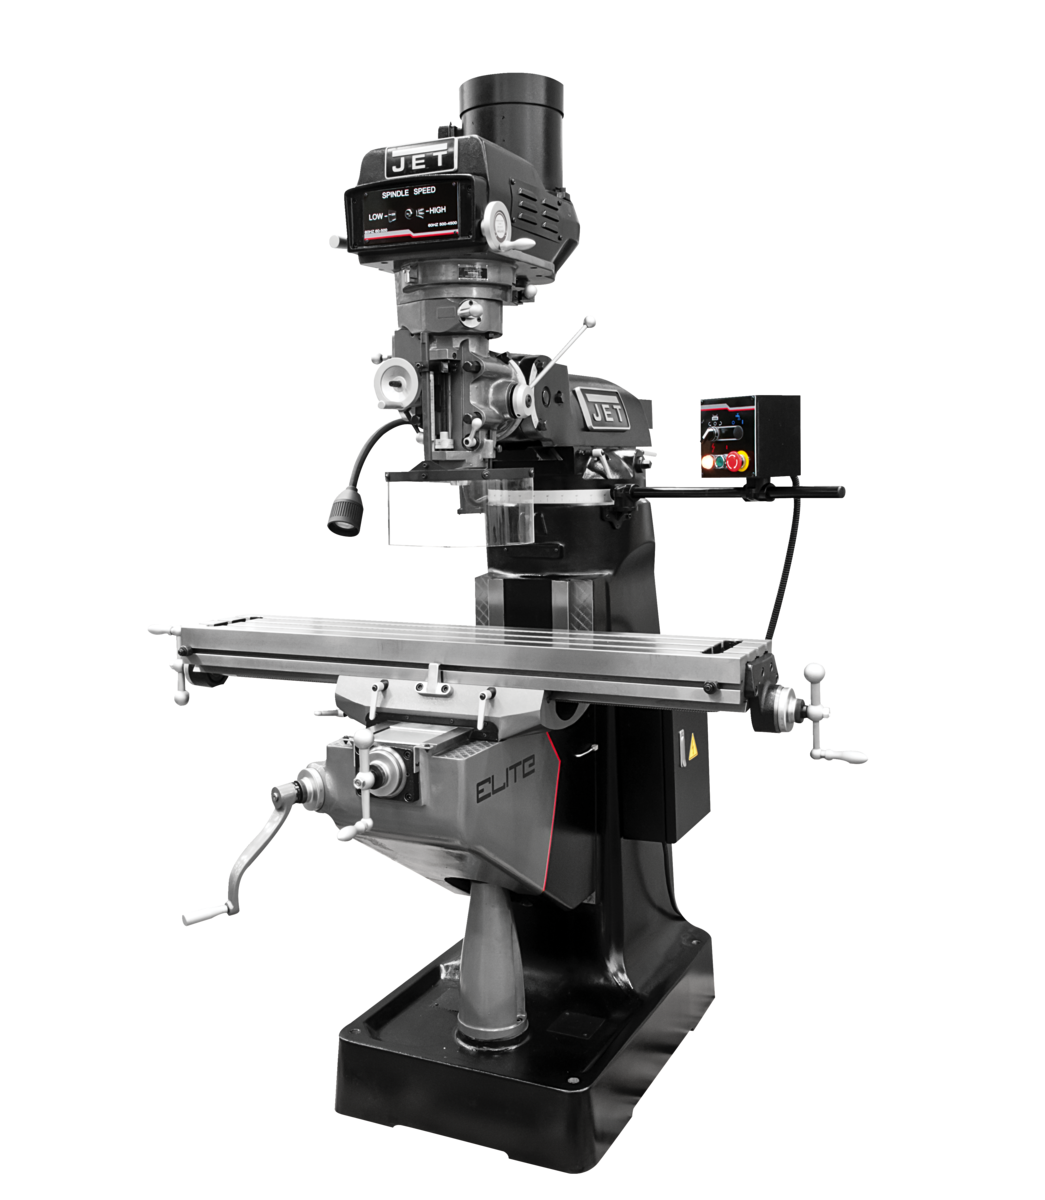 ETM-949 Mill with 3-Axis ACU-RITE 203 (Knee) DRO and Servo X-Axis Powerfeed and USA Air Powered Draw Bar